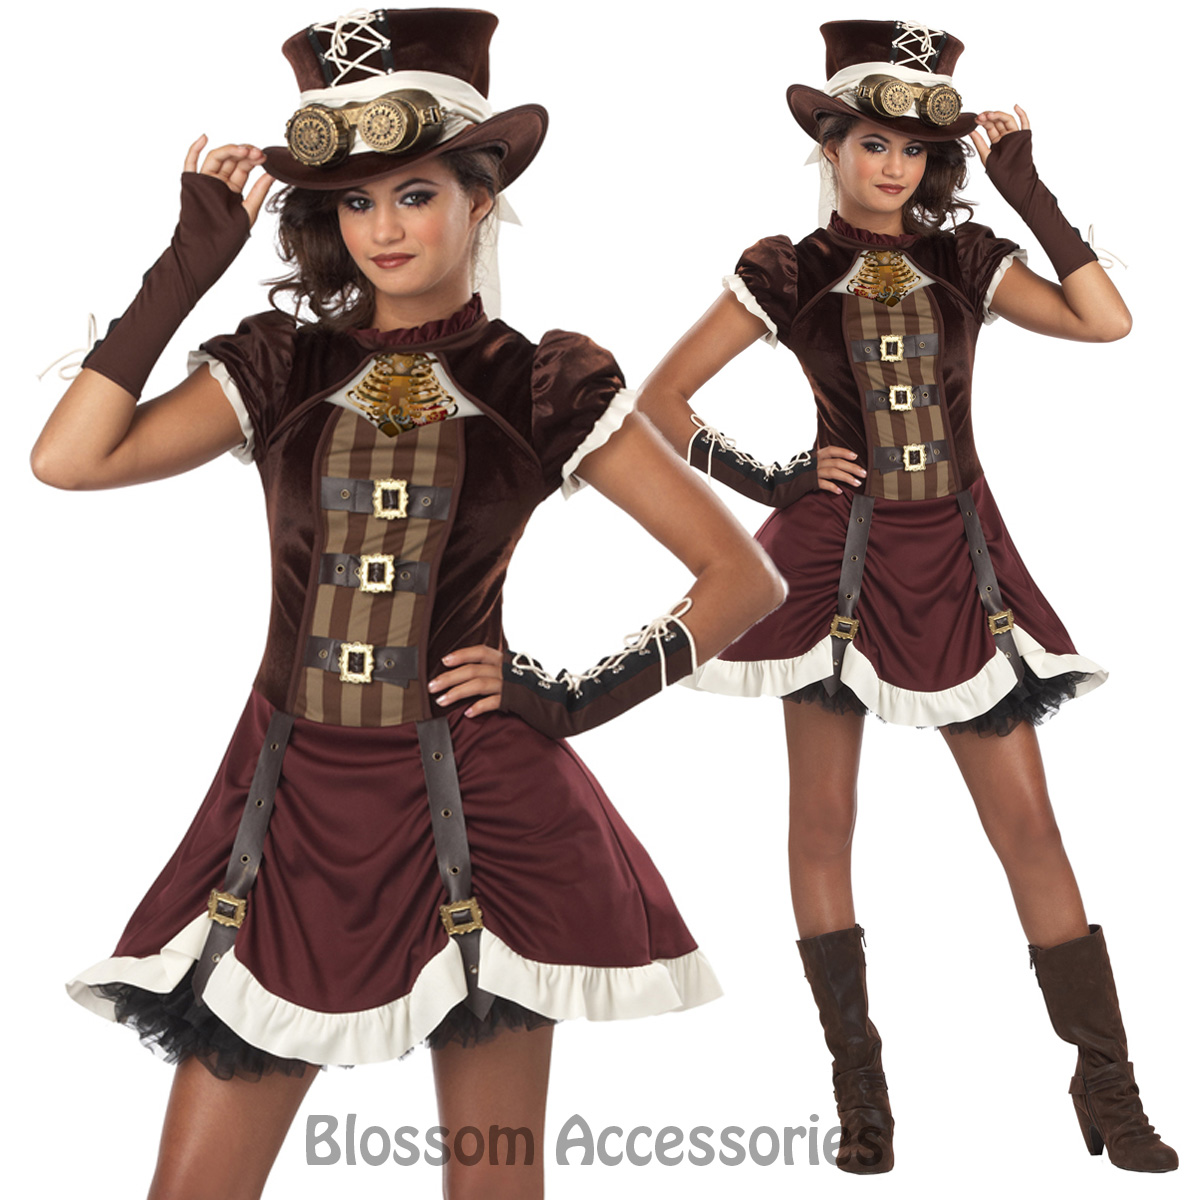 Image is loading CK296-Ste&unk-Girl-Tween-Victorian-Gothic-Halloween -Fancy-  sc 1 st  eBay & CK296 Steampunk Girl Tween Victorian Gothic Halloween Fancy Dress Up ...